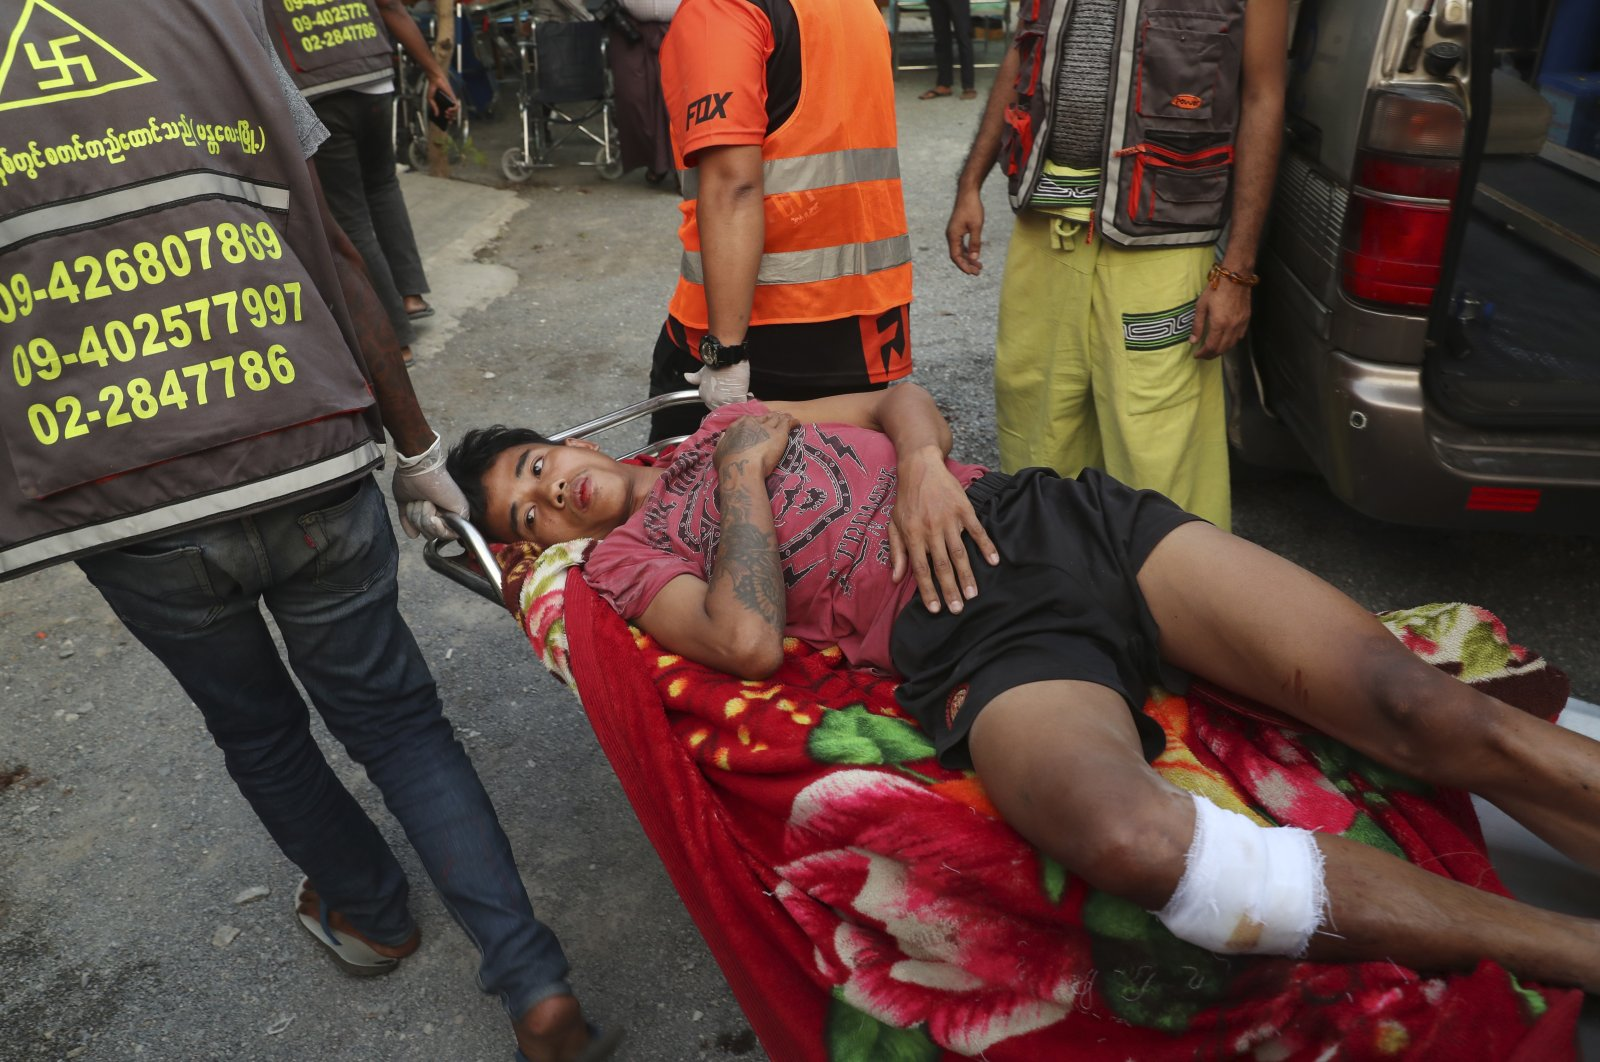 An injured man lies on a stretcher being carried by members of a volunteer rescue team in Mandalay, Myanmar Sunday, March 14, 2021. (AP Photo)